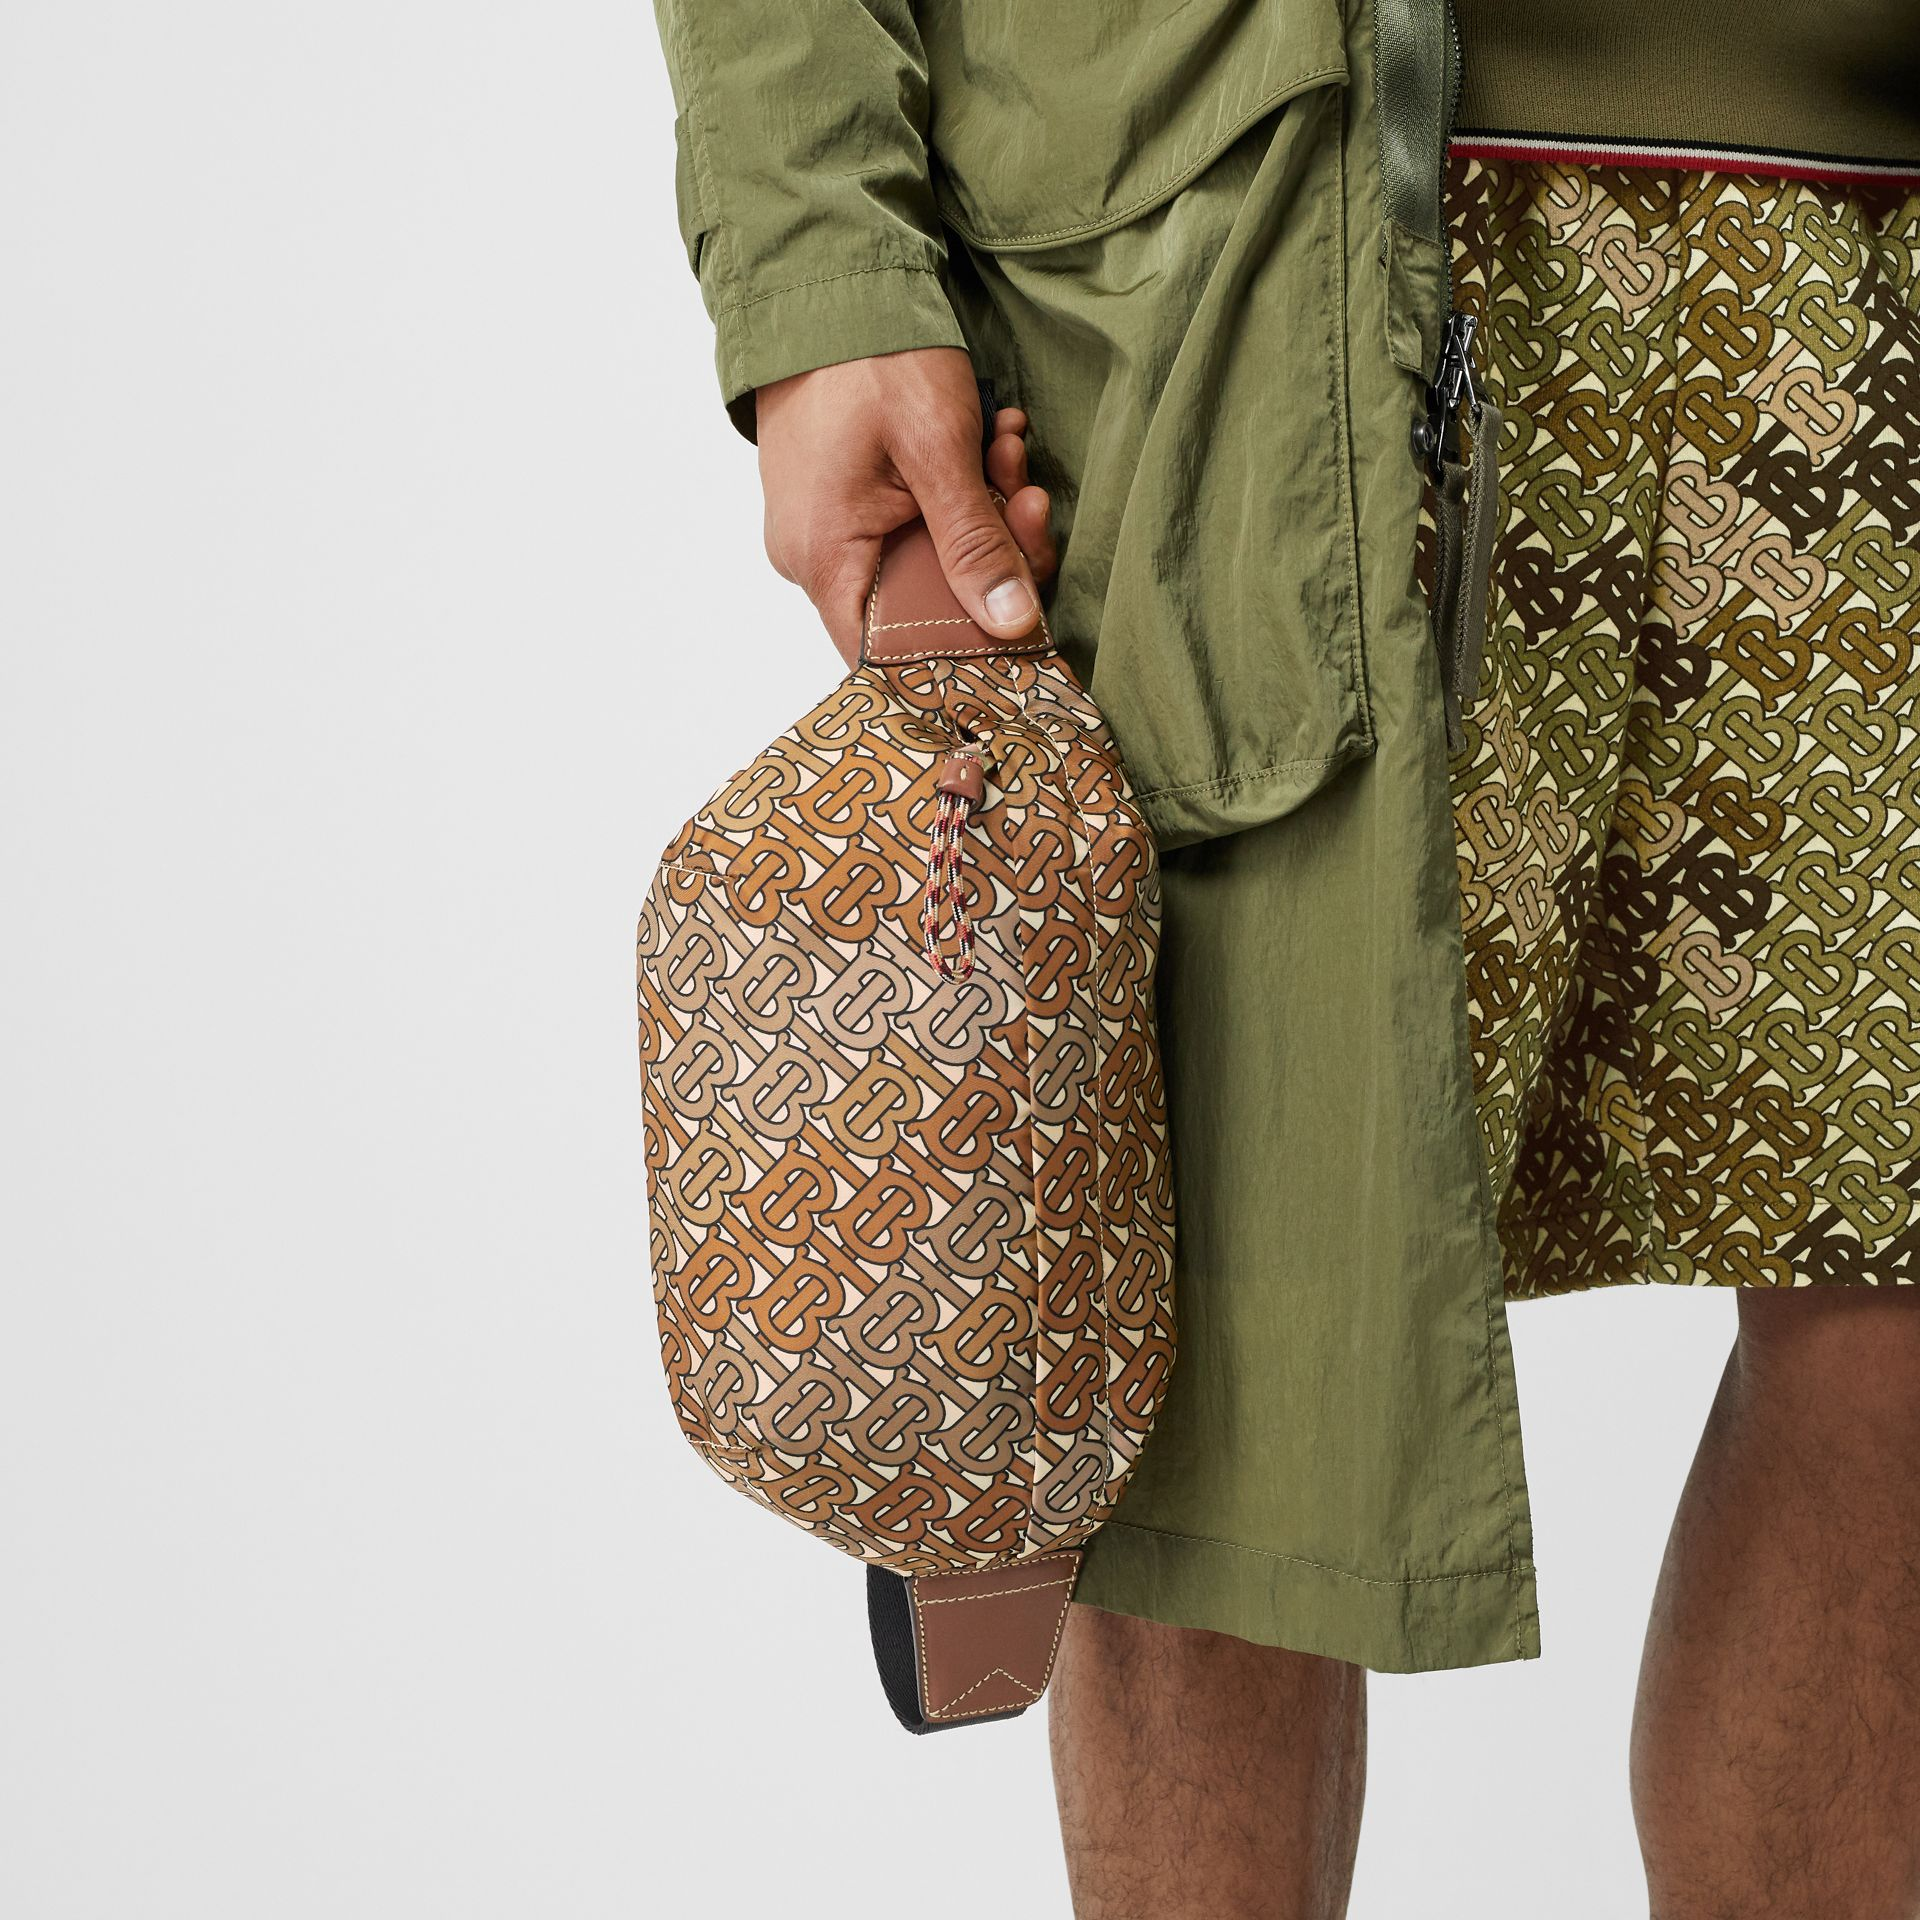 Sac banane moyen Monogram (Marron Camouflage) - Homme | Burberry - photo de la galerie 3